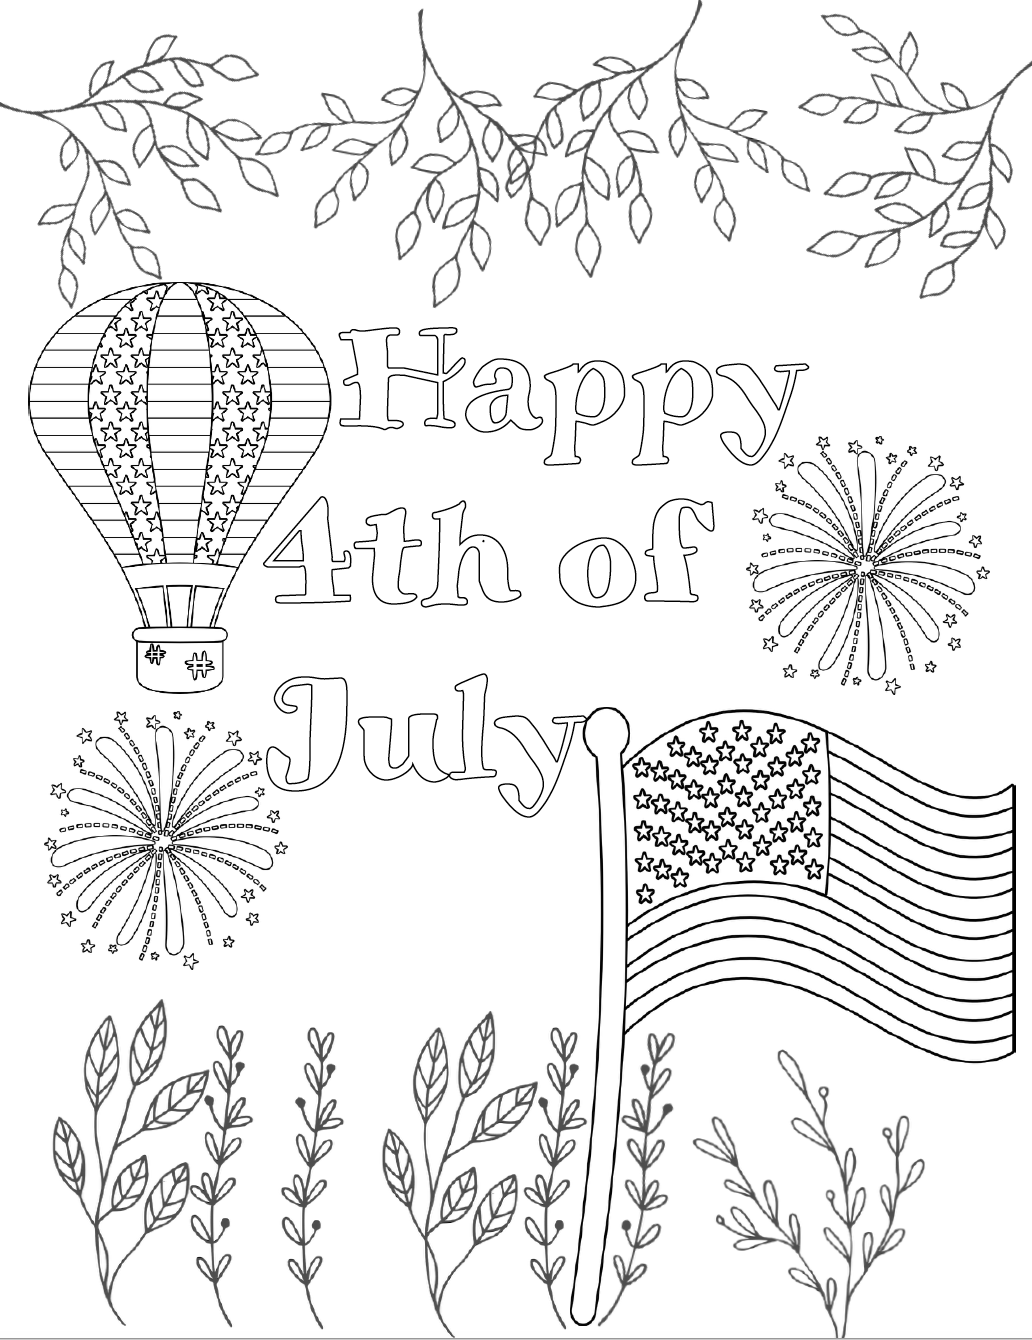 4 of july coloring sheets 4th of july coloring pages coloring pages to print coloring 4 of sheets july